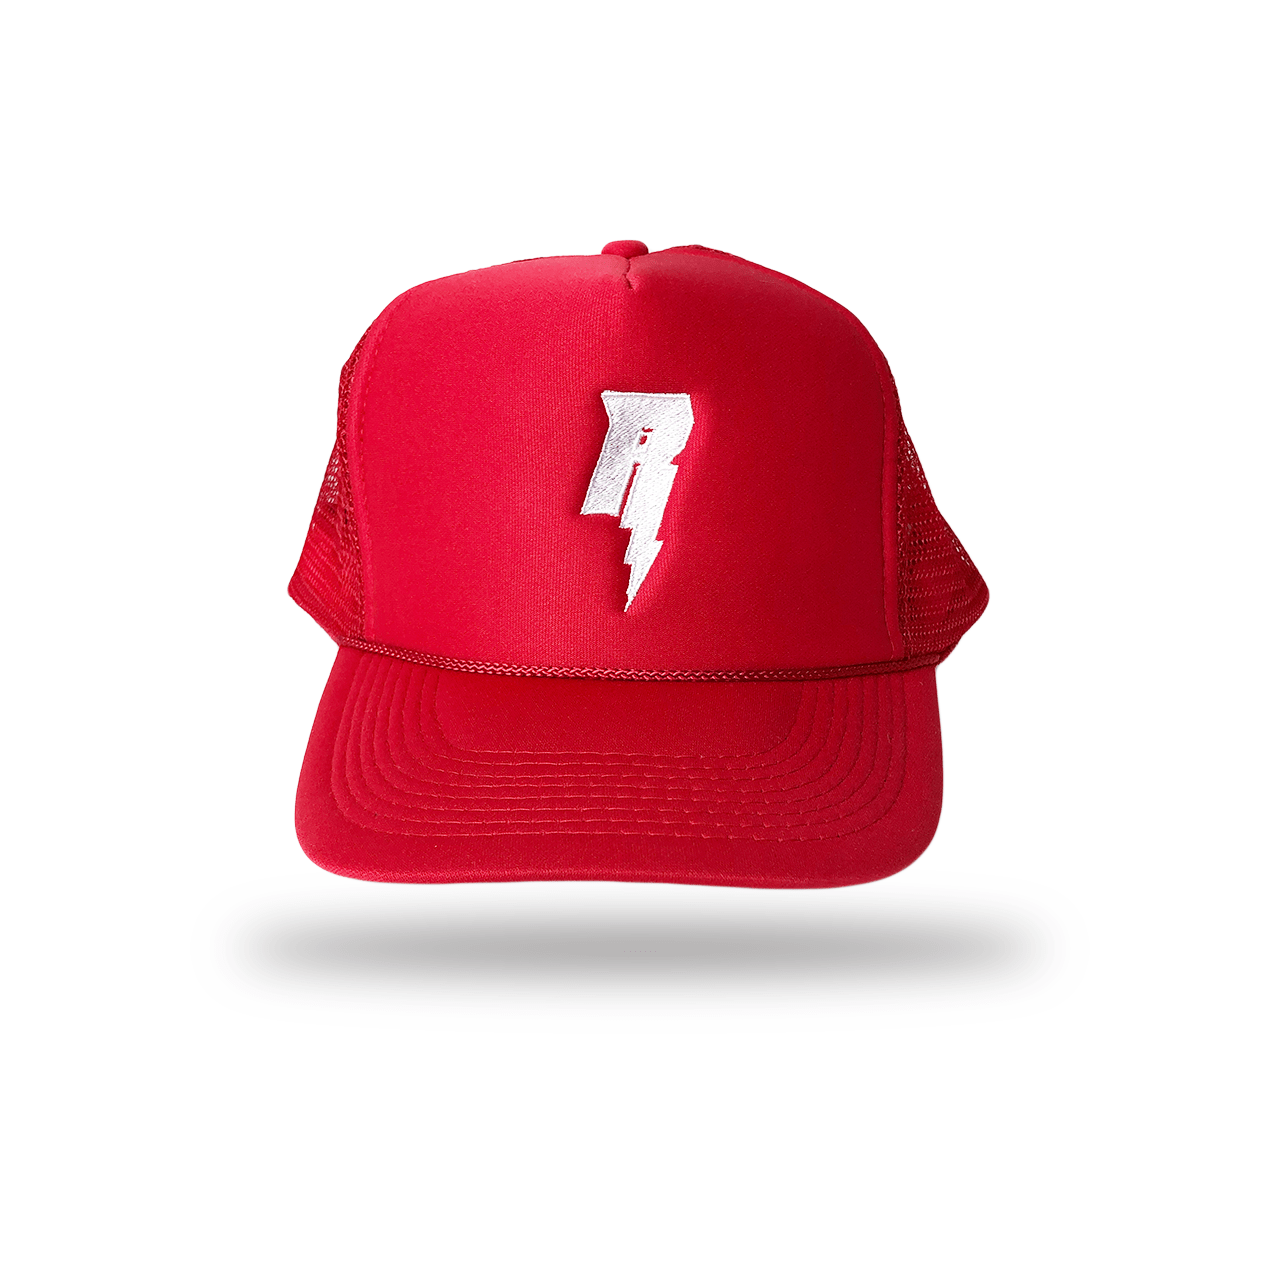 Revive Minds Statement Hat (RED) PRE-ORDER